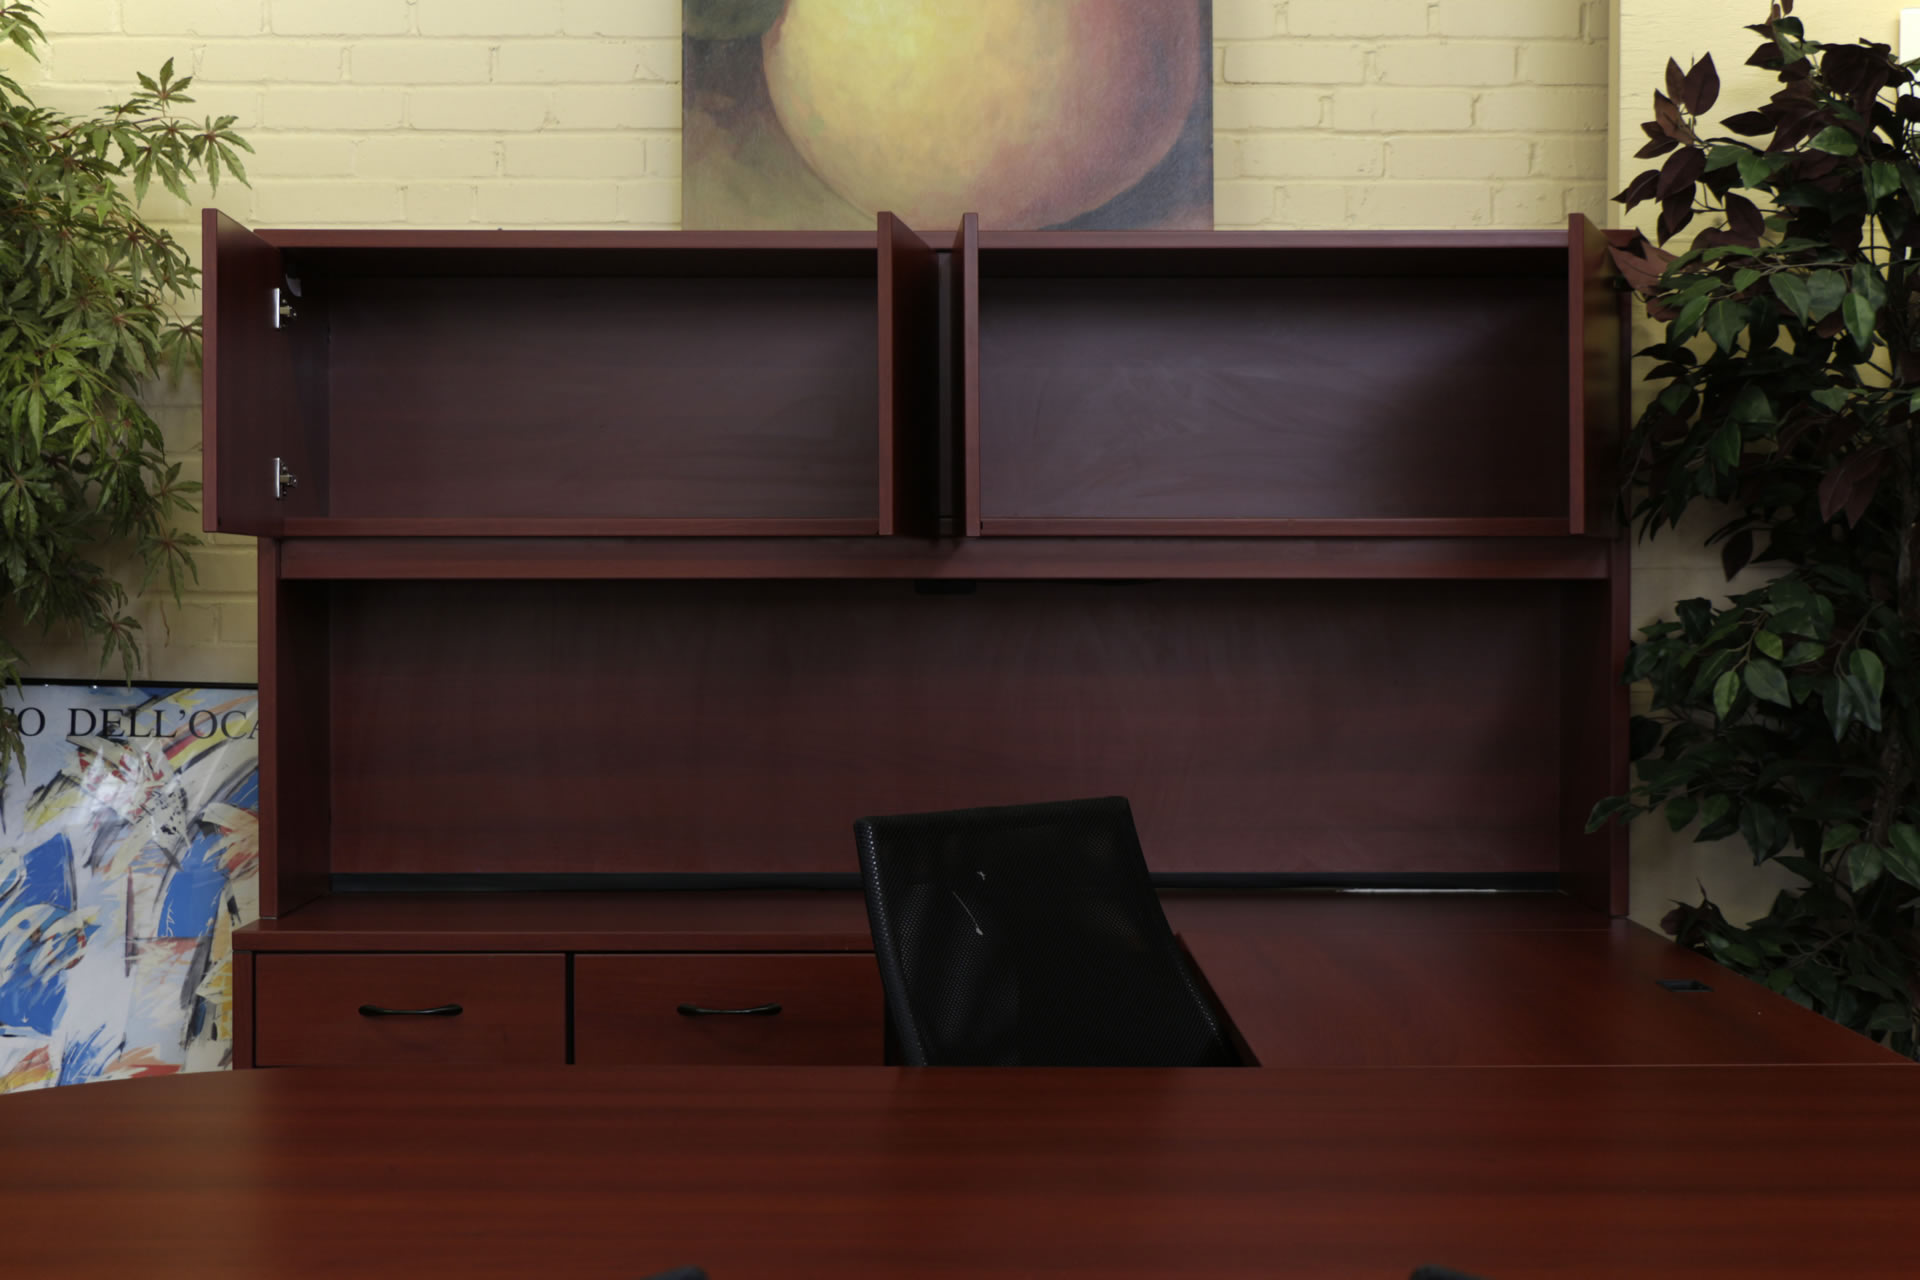 peartreeofficefurniture_peartreeofficefurniture_mg_5304.jpg